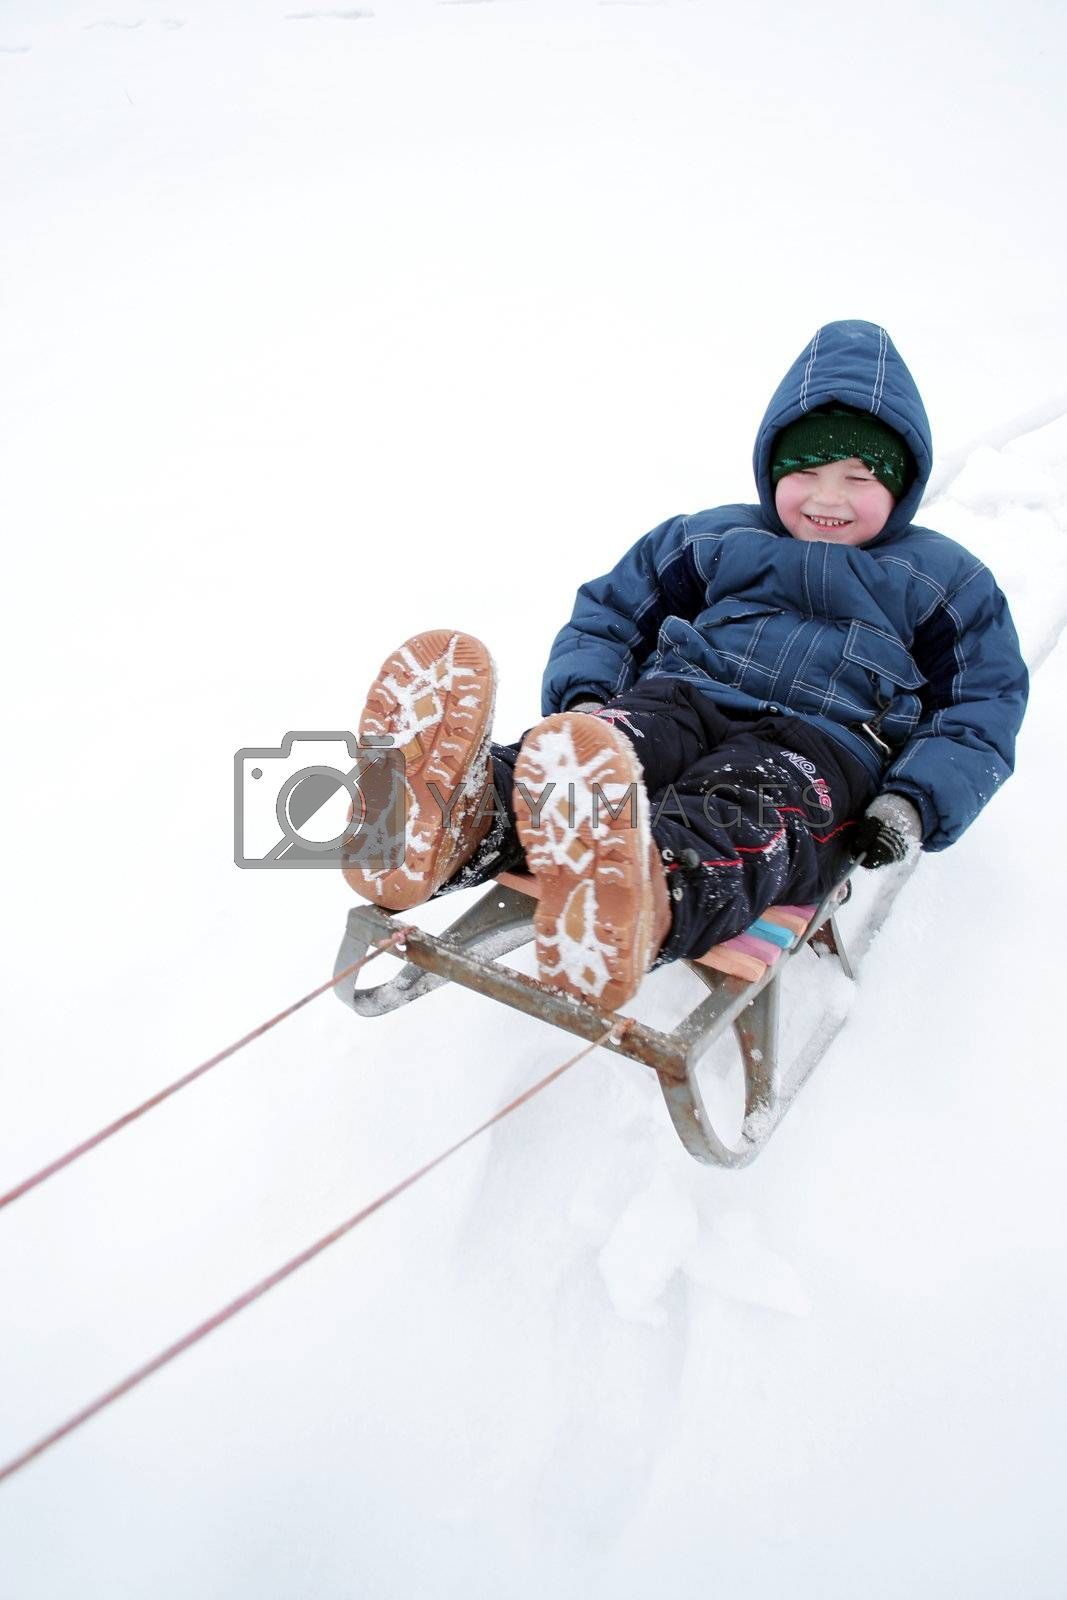 Winter riding of the boy on sled